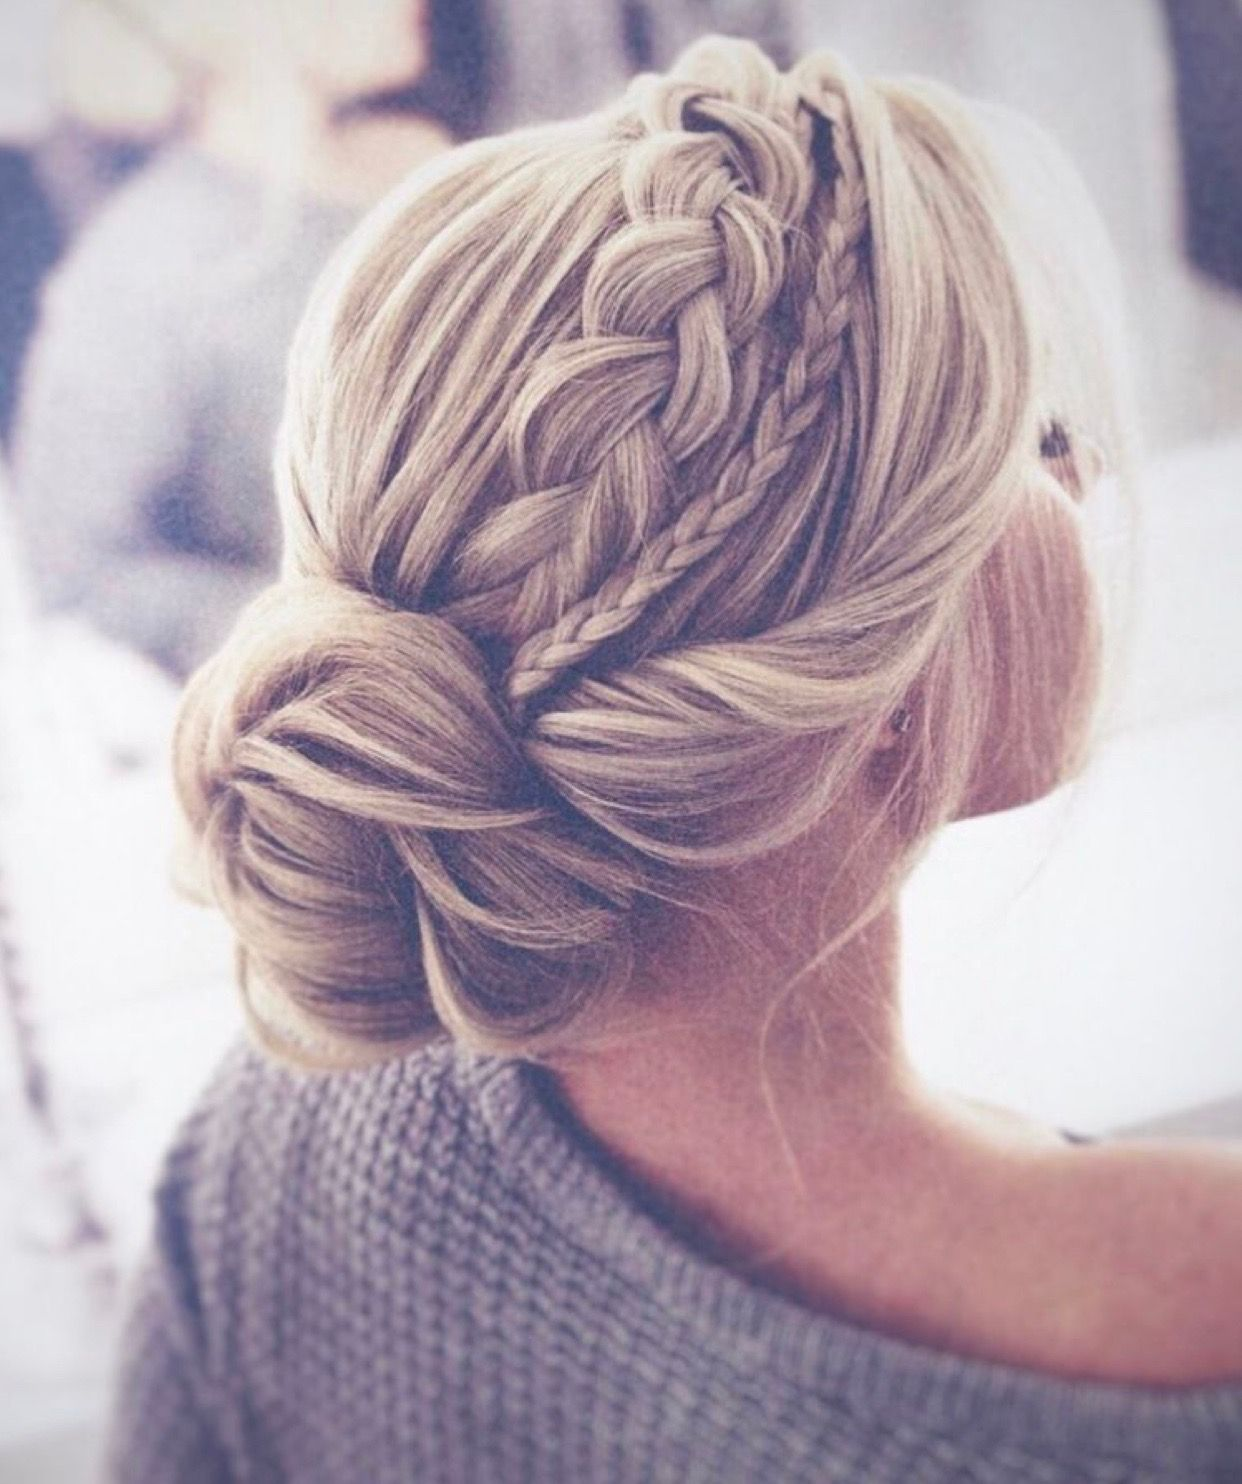 The Most Perfect Braided Updo Twisted Into An Elegant Low Bun This Hairstyle Is Absolutely Perfect Braided Hairstyles For Wedding Hair Styles Long Hair Styles